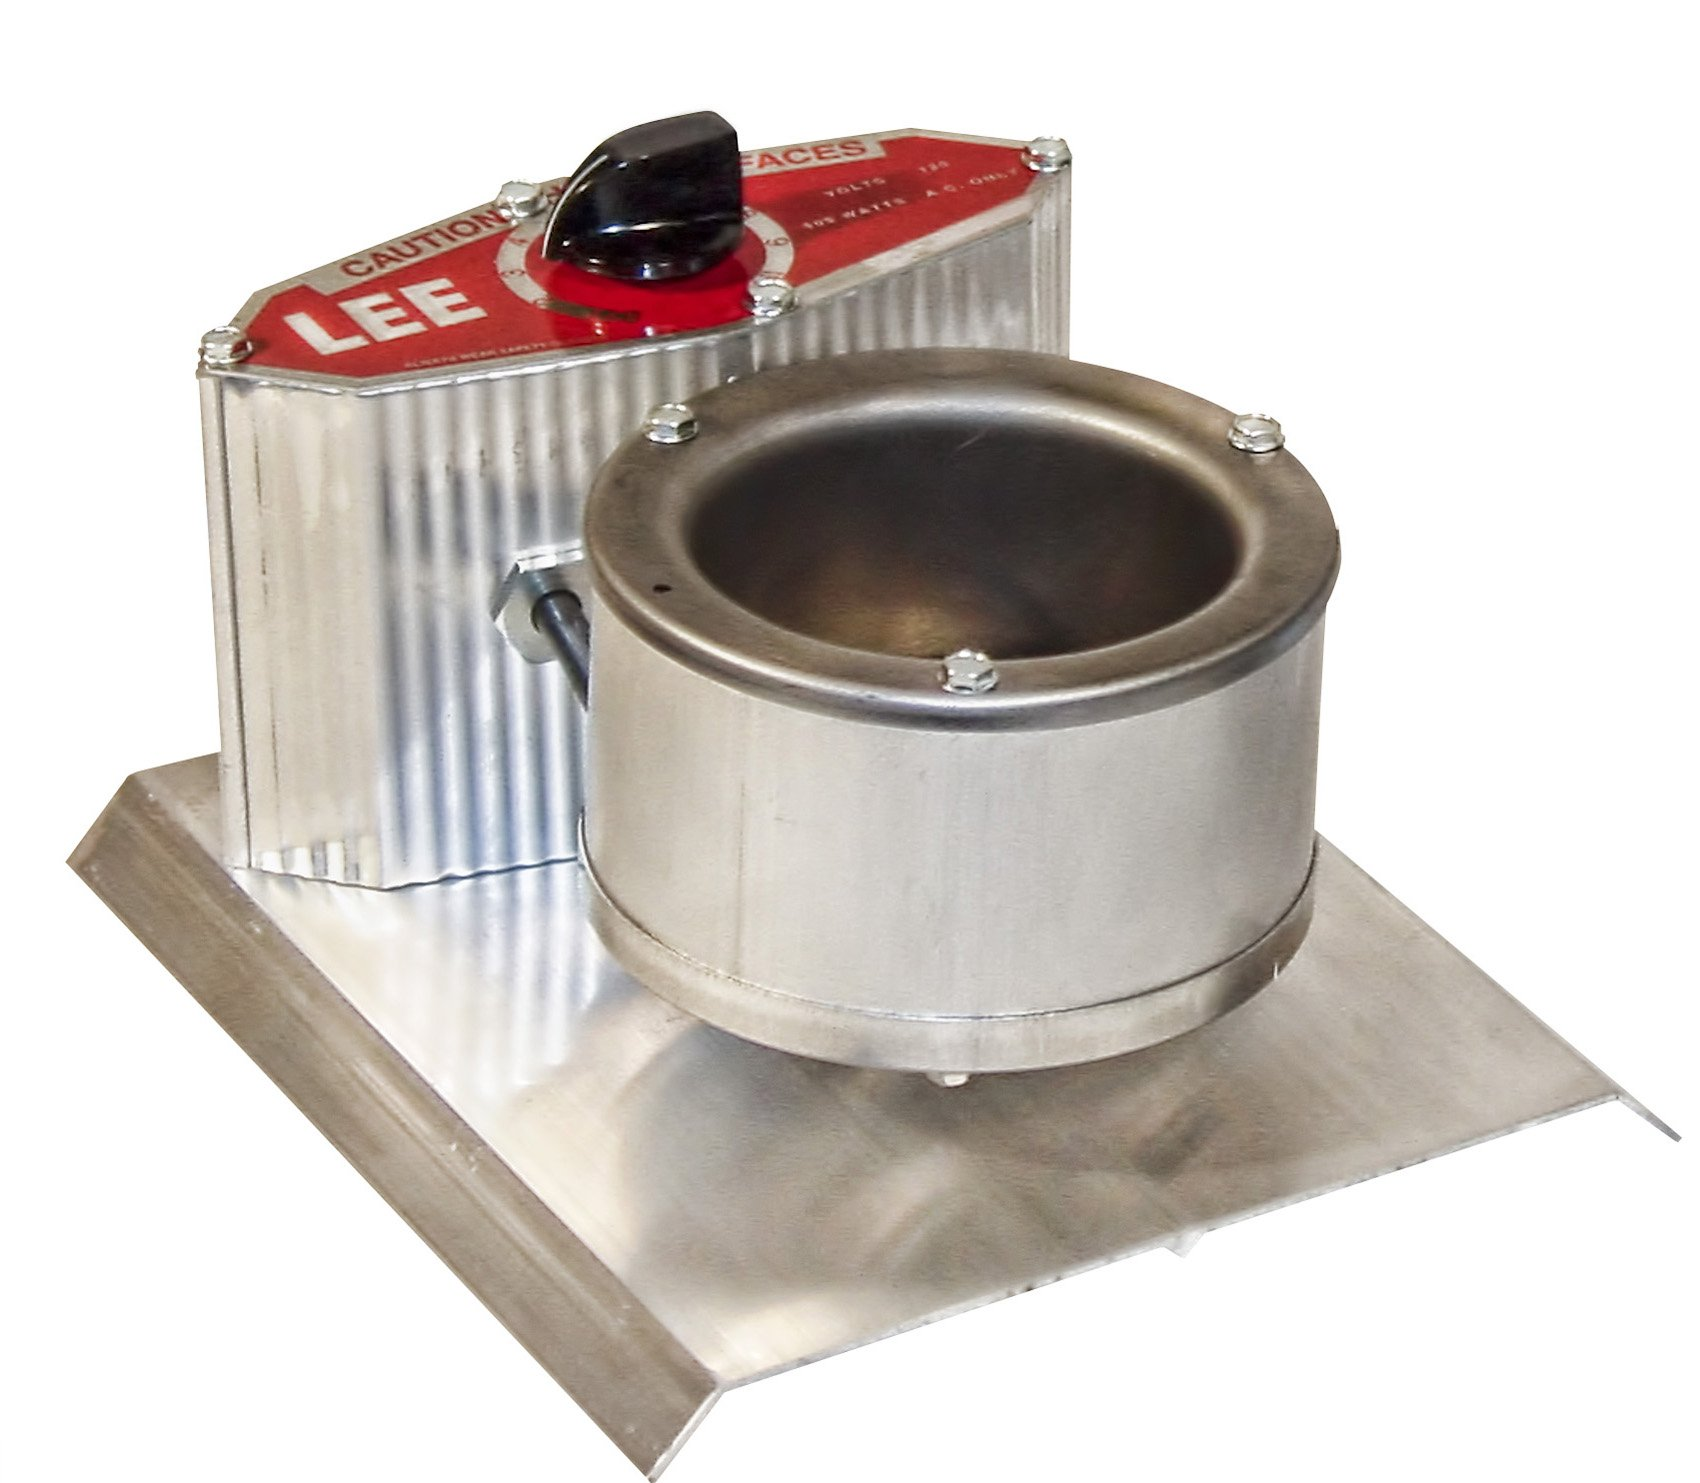 LEE PRECISION 90021 Melter (Grey) by LEE PRECISION (Image #1)